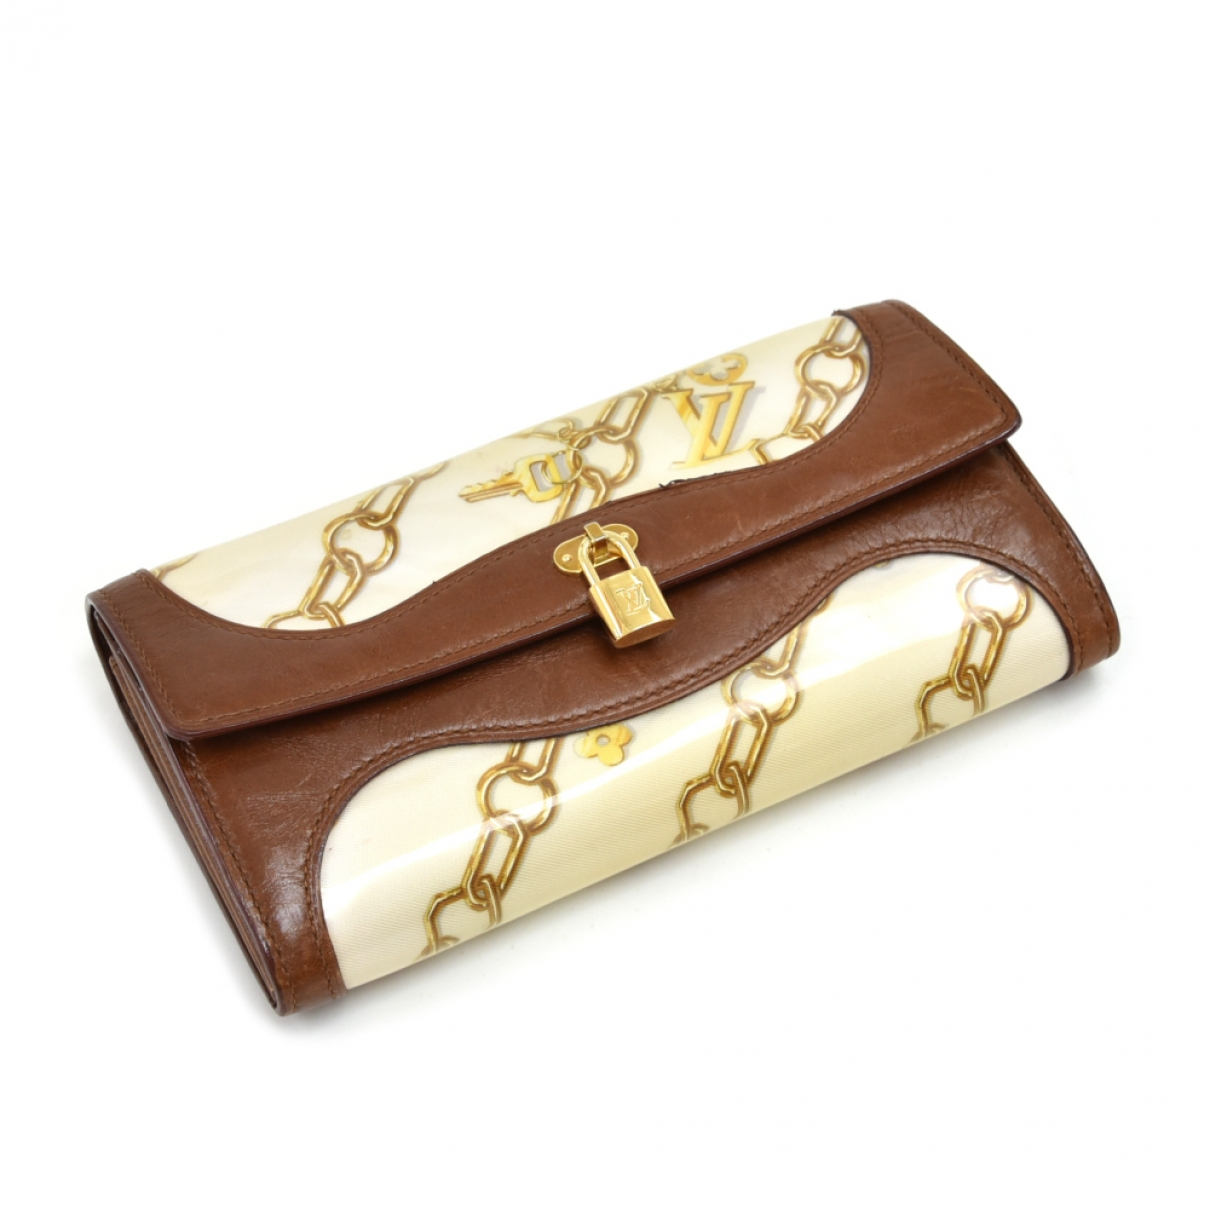 Louis Vuitton \N Gold Leather wallet for Women \N